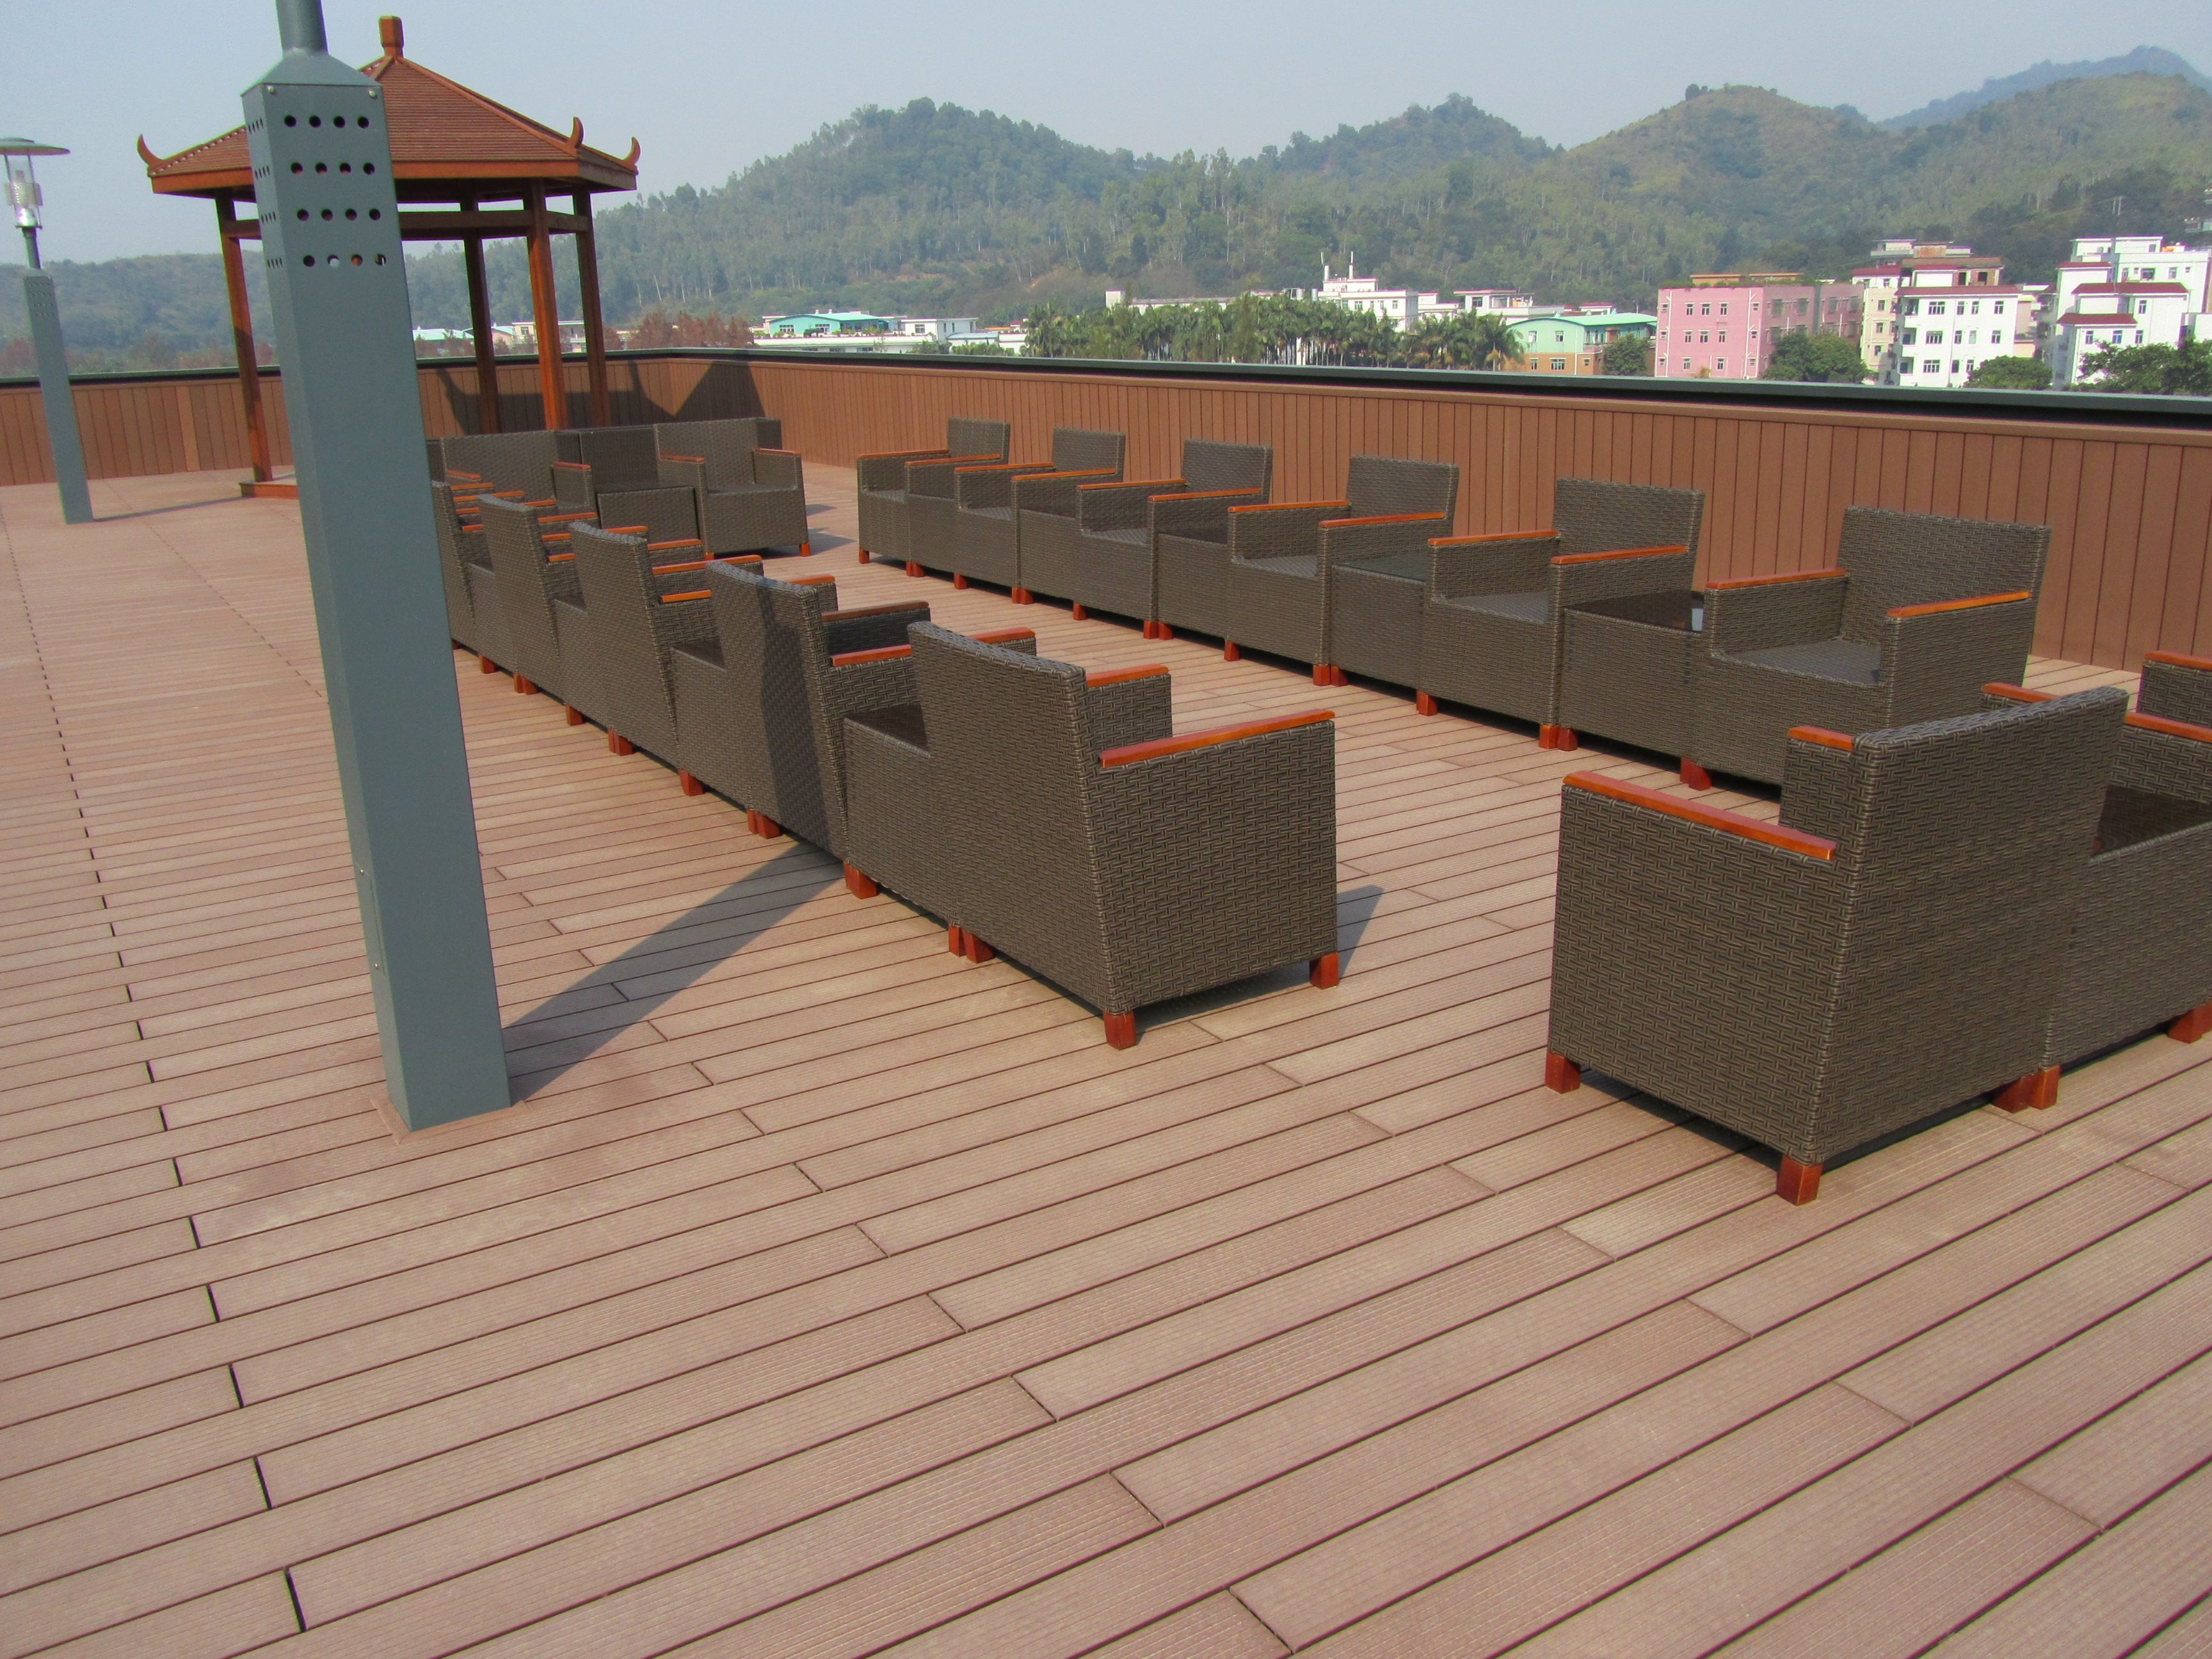 Can I Put Valspar Porch And Floor Paint On Roof 1x6 Yellow Pine Tongue And Groove Floor Timber Decking Italy Arquitectura